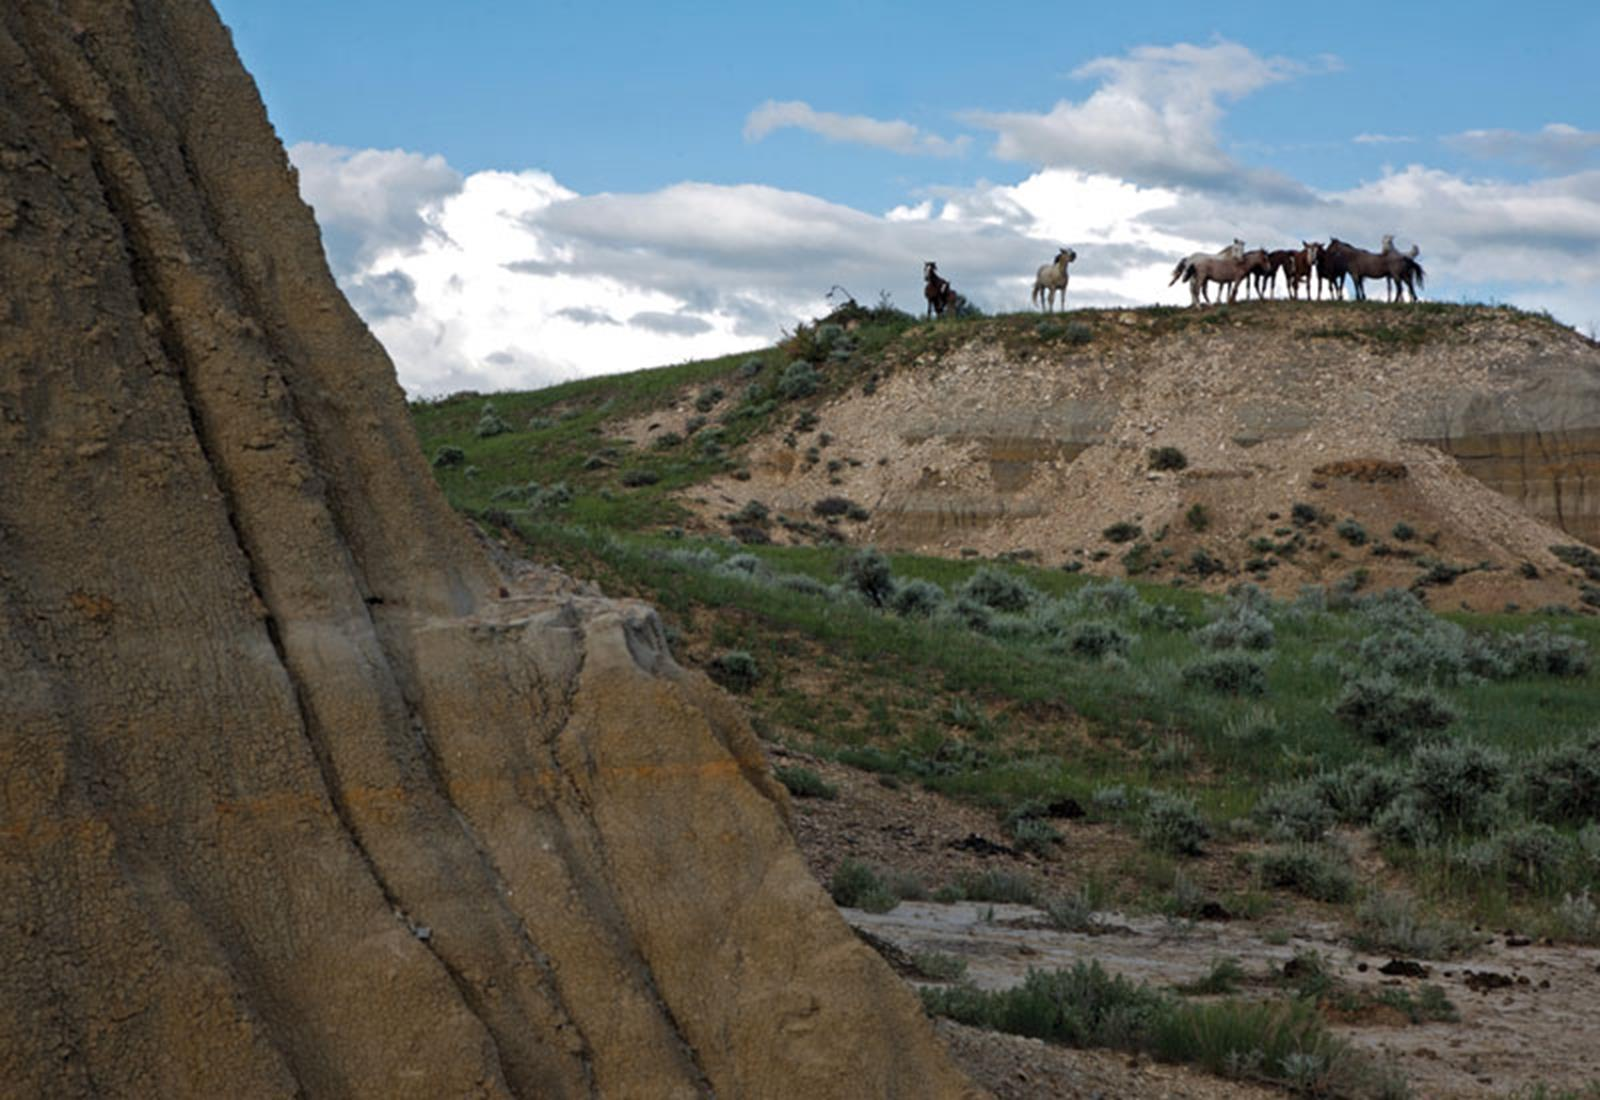 Theodore Roosevelt National Park, Badlands. Credit: ND Parks & Rec.